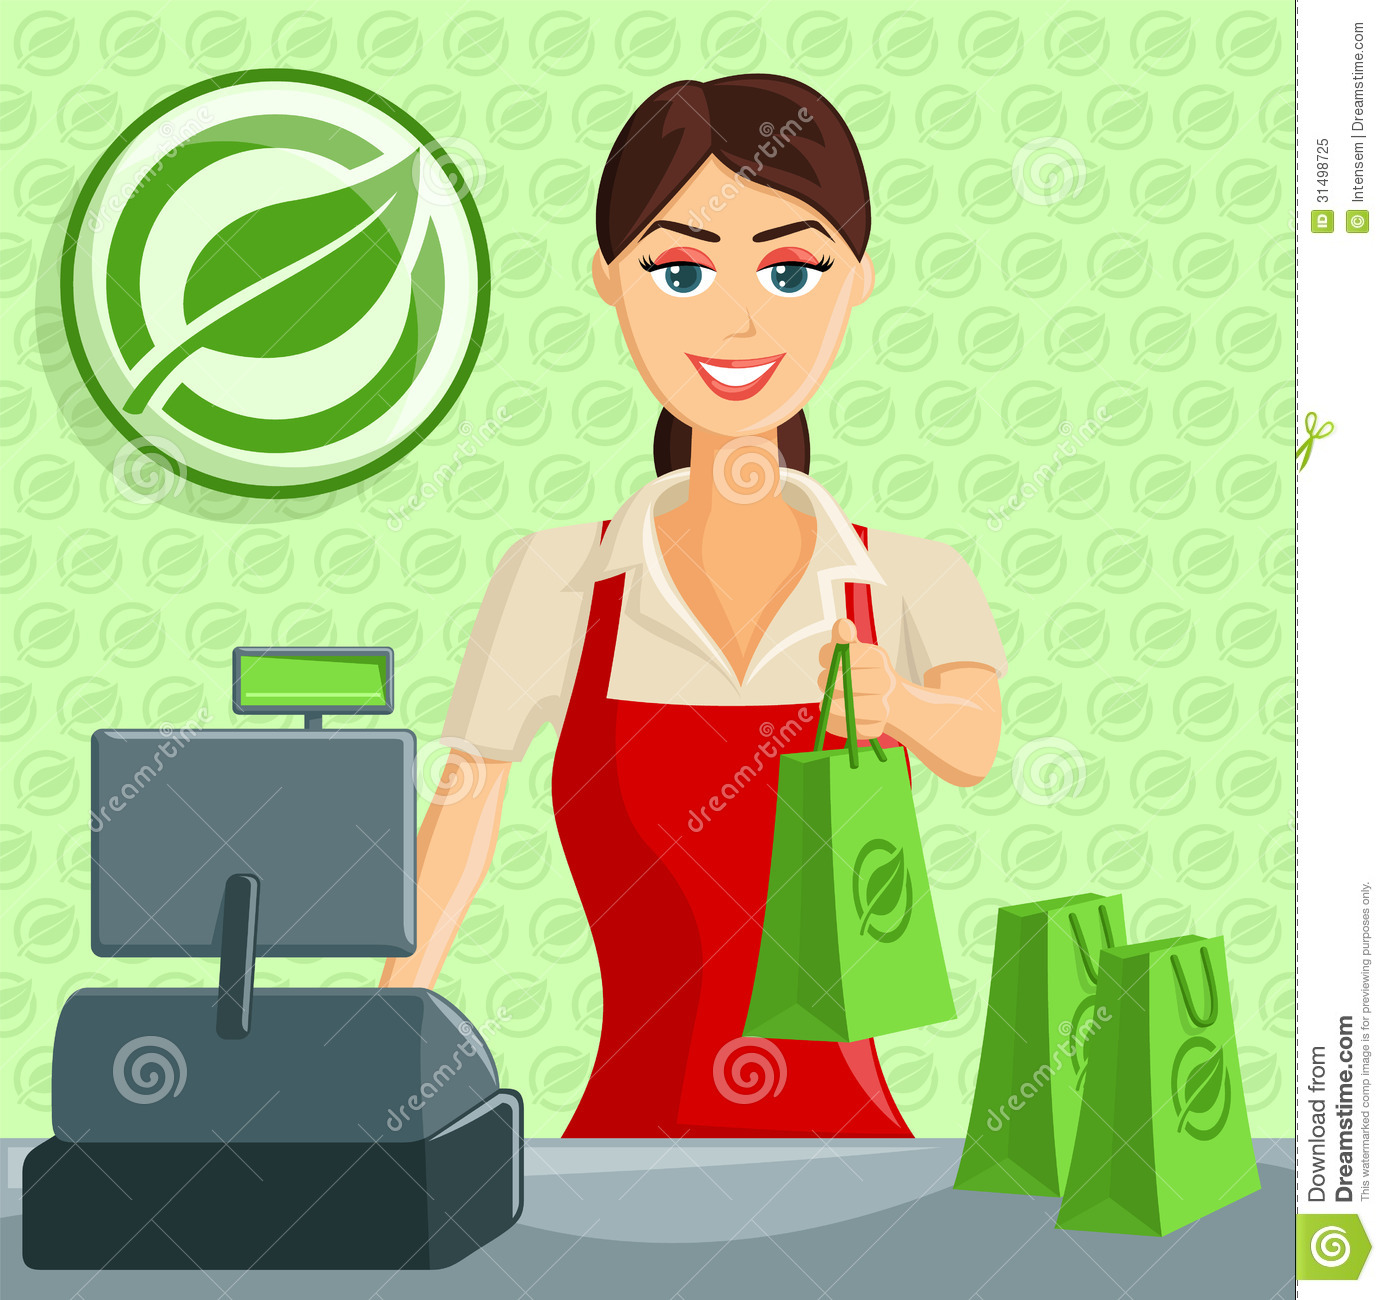 Grocery store clerk clipart graphic royalty free Grocery store clerk clipart - ClipartFest graphic royalty free